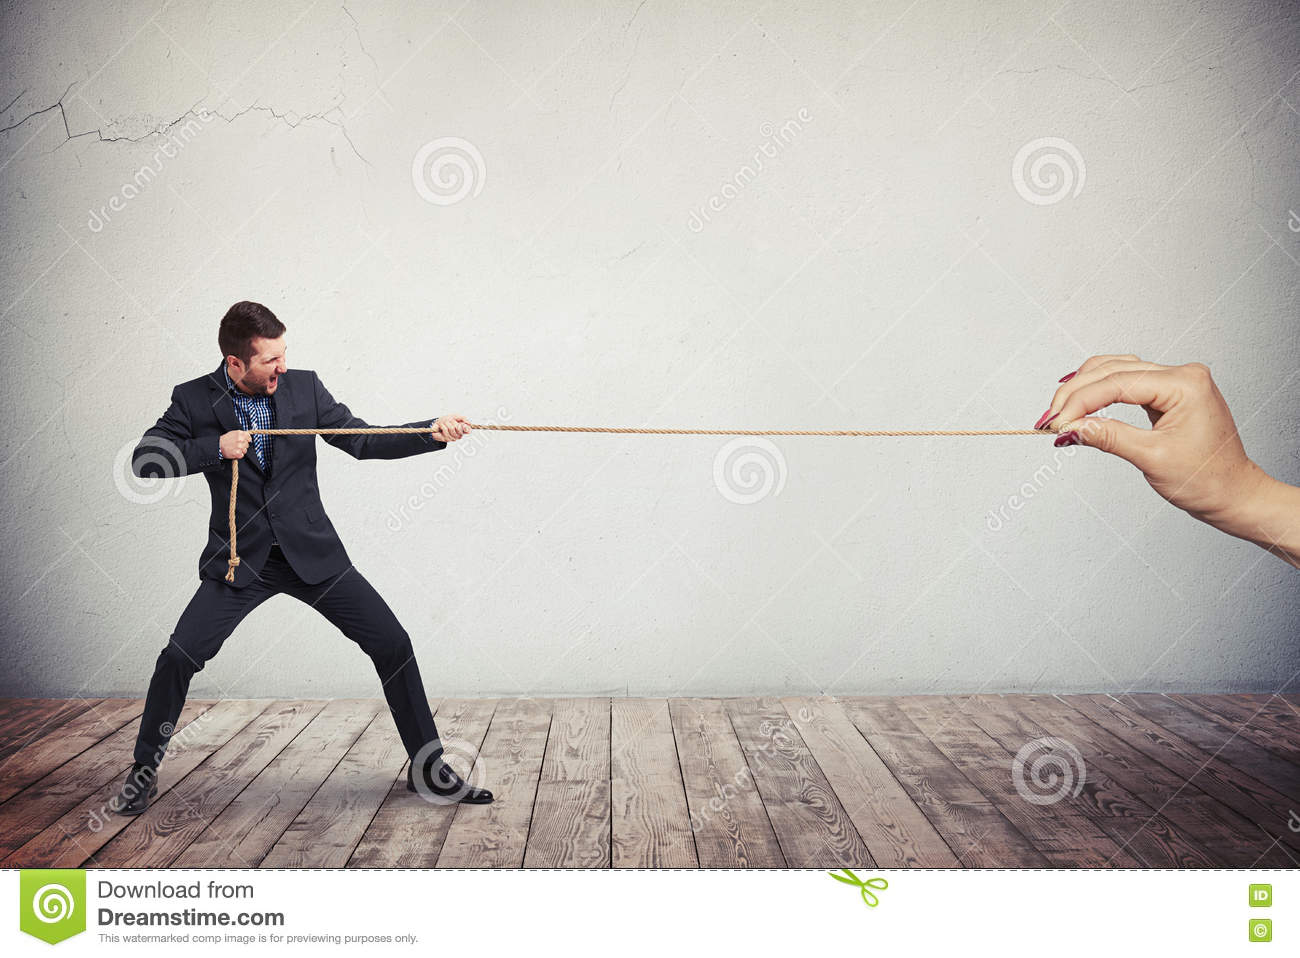 Man in business suit is pulling the rope